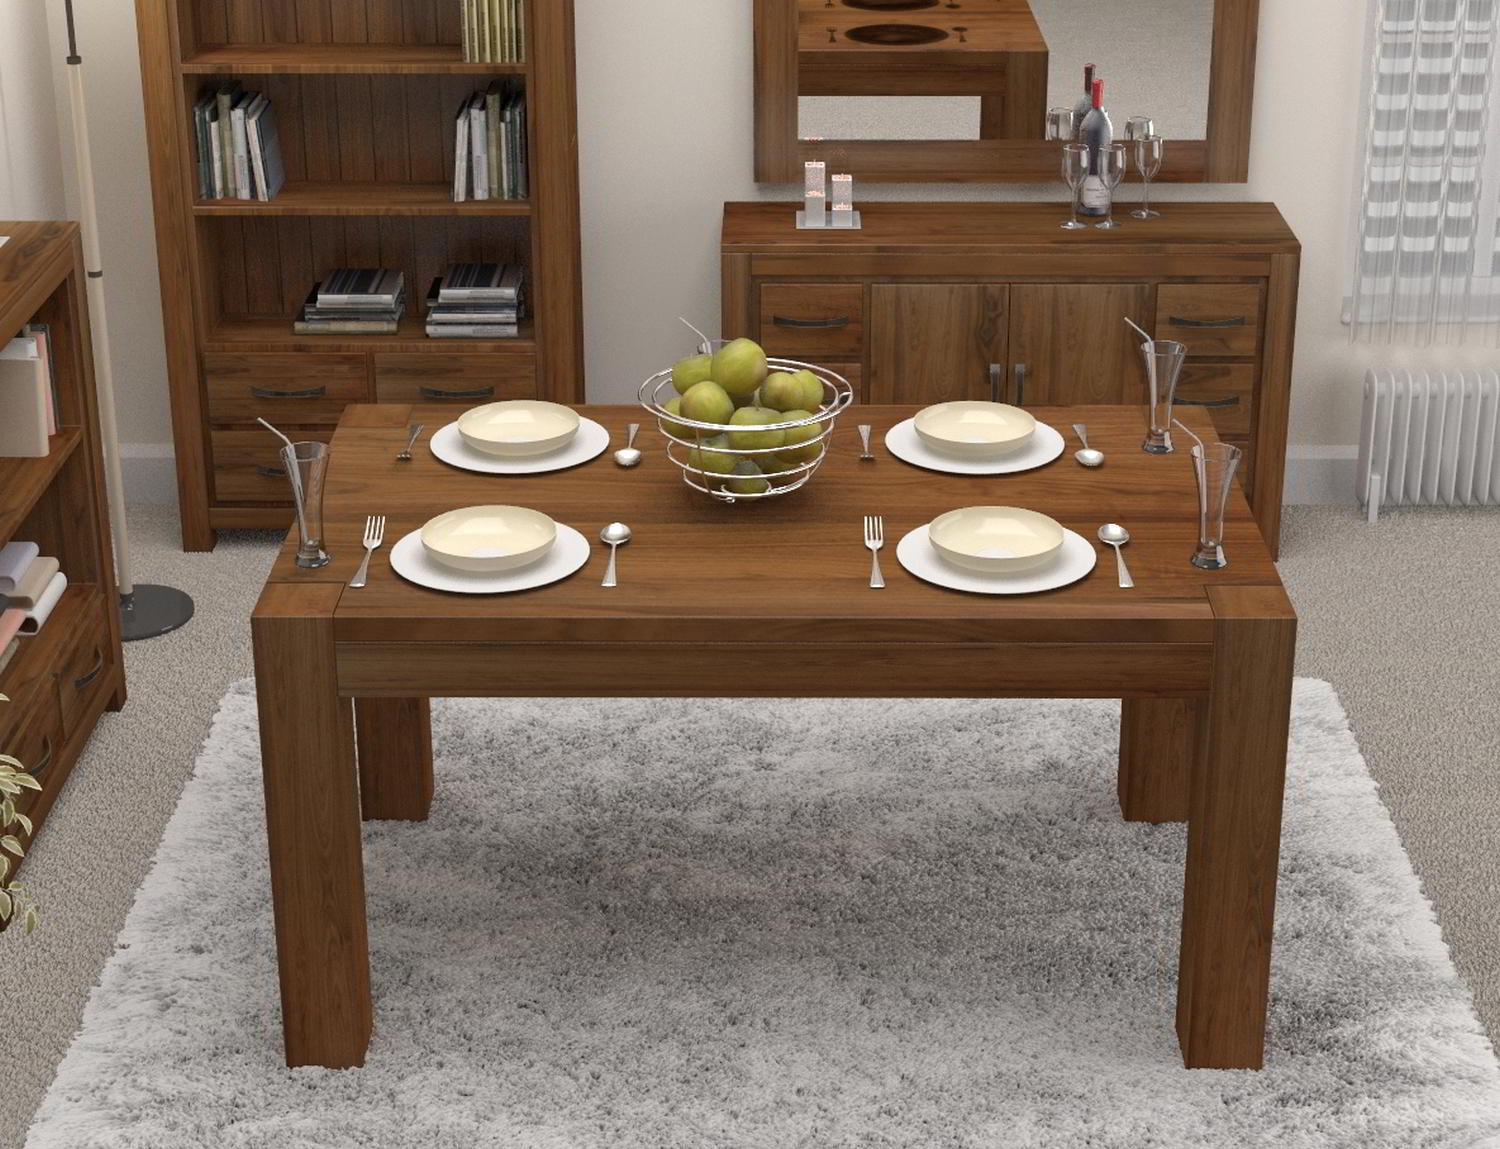 Linea Solid Walnut Home Dining Room Furniture Four Seater Table